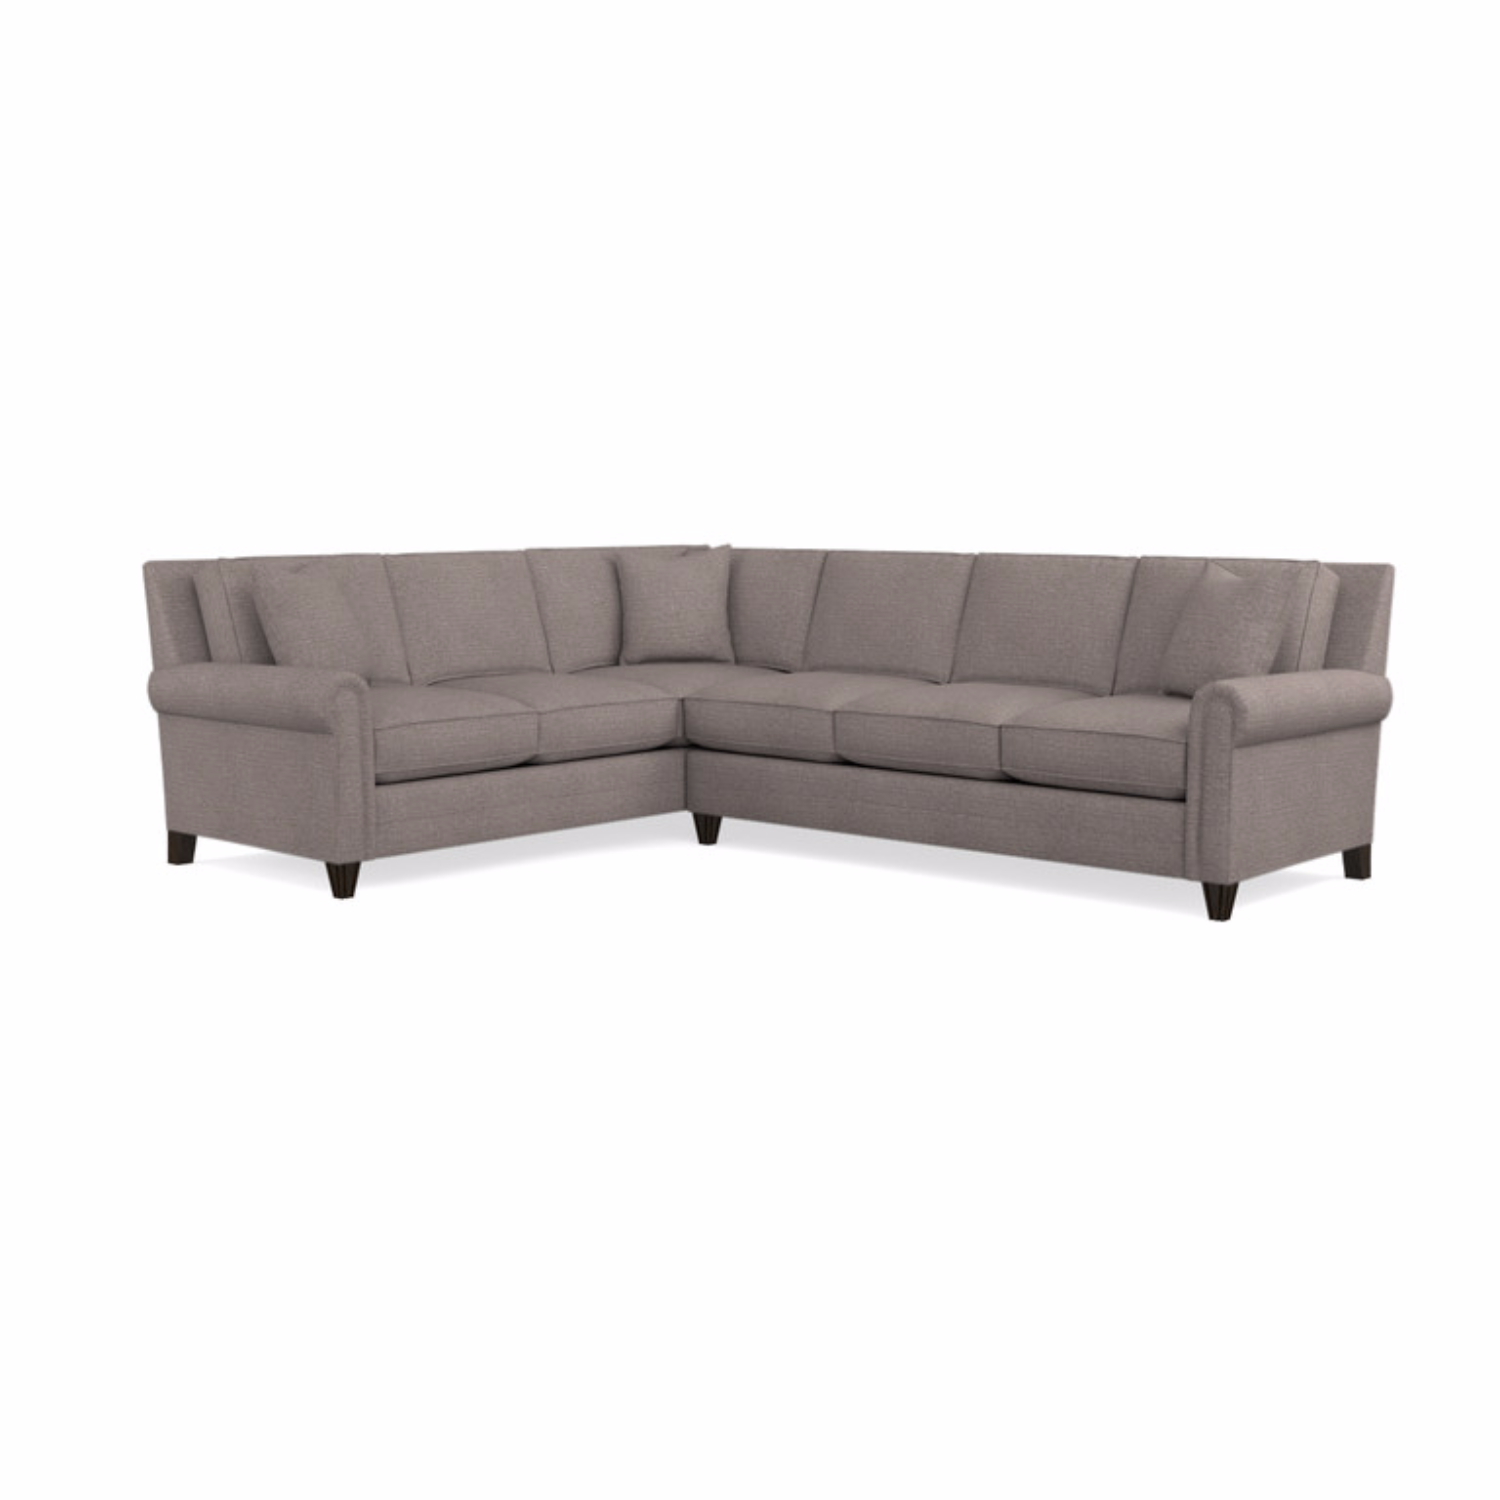 Bassett Harlan 2618 Sectional